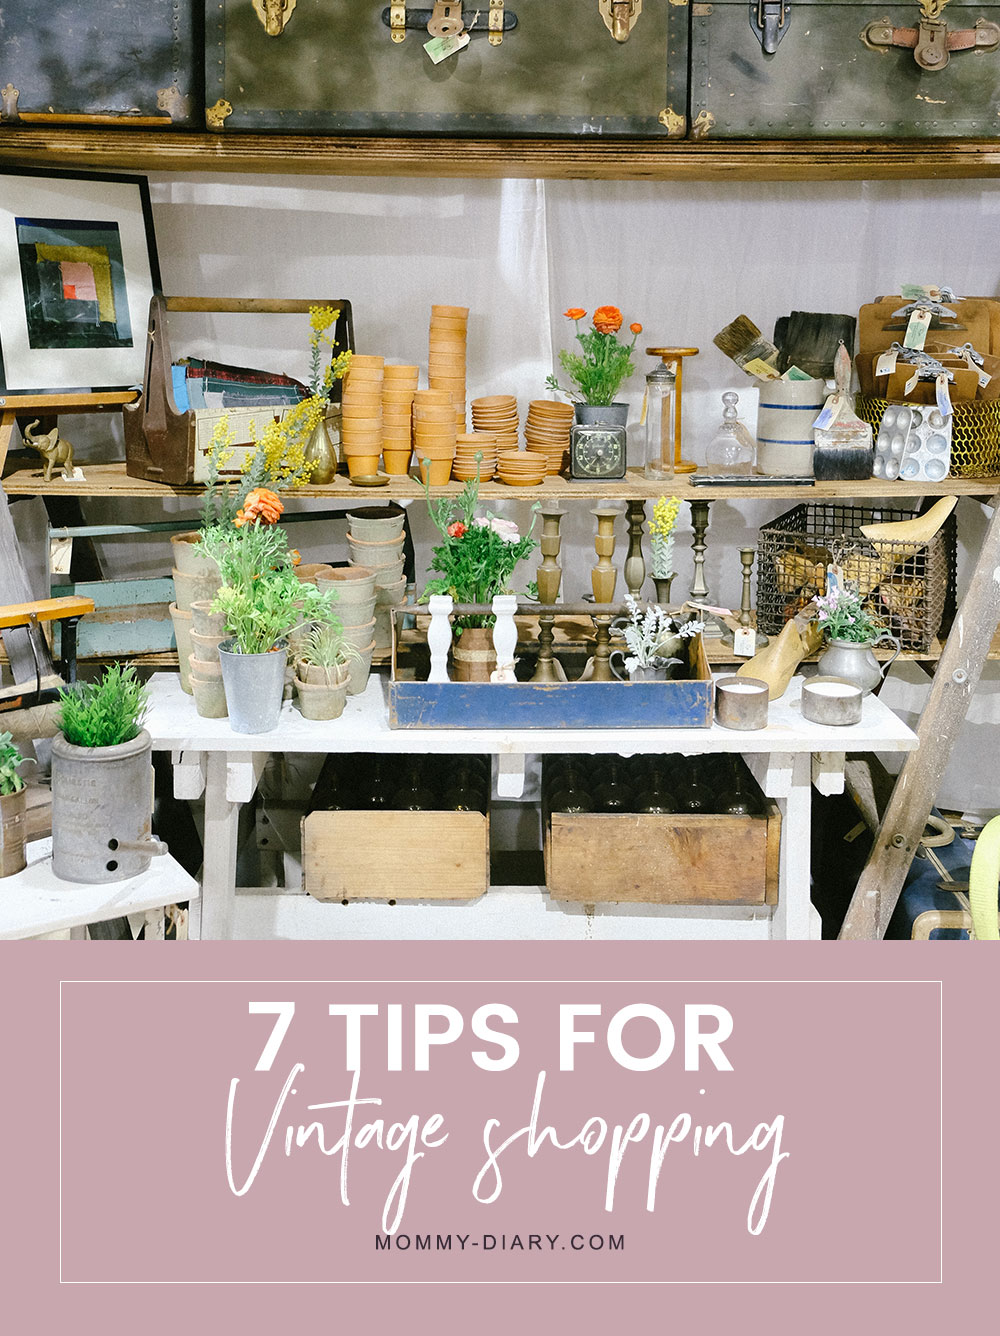 7-tips-for-vintage-shopping-pinteret